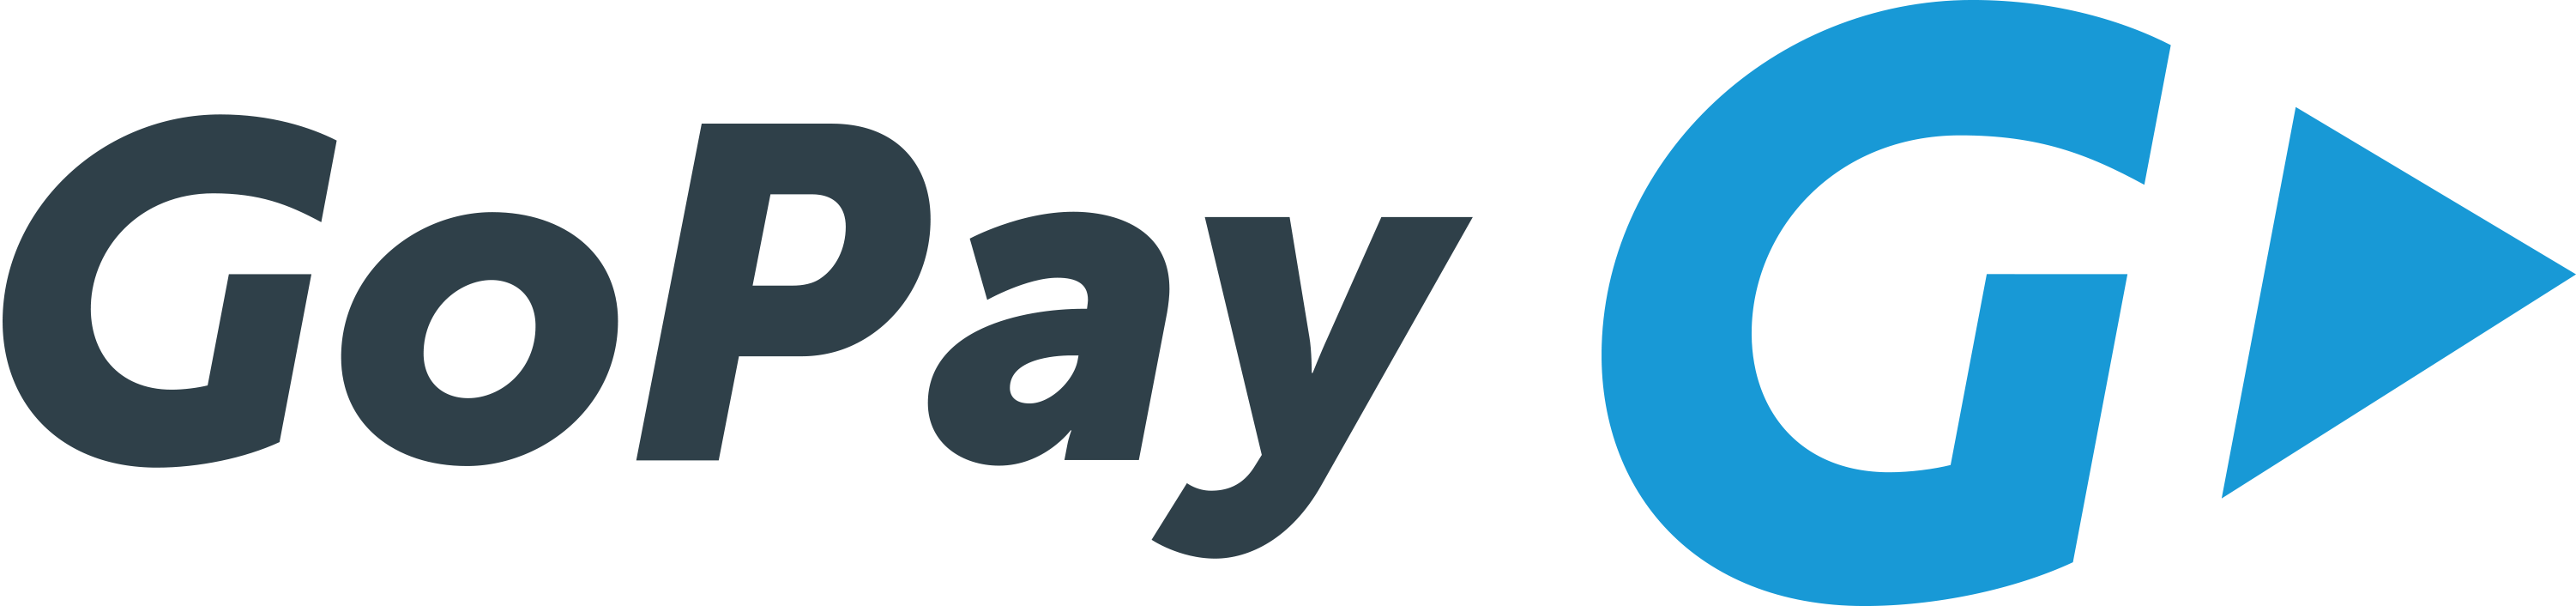 gopay-new.png